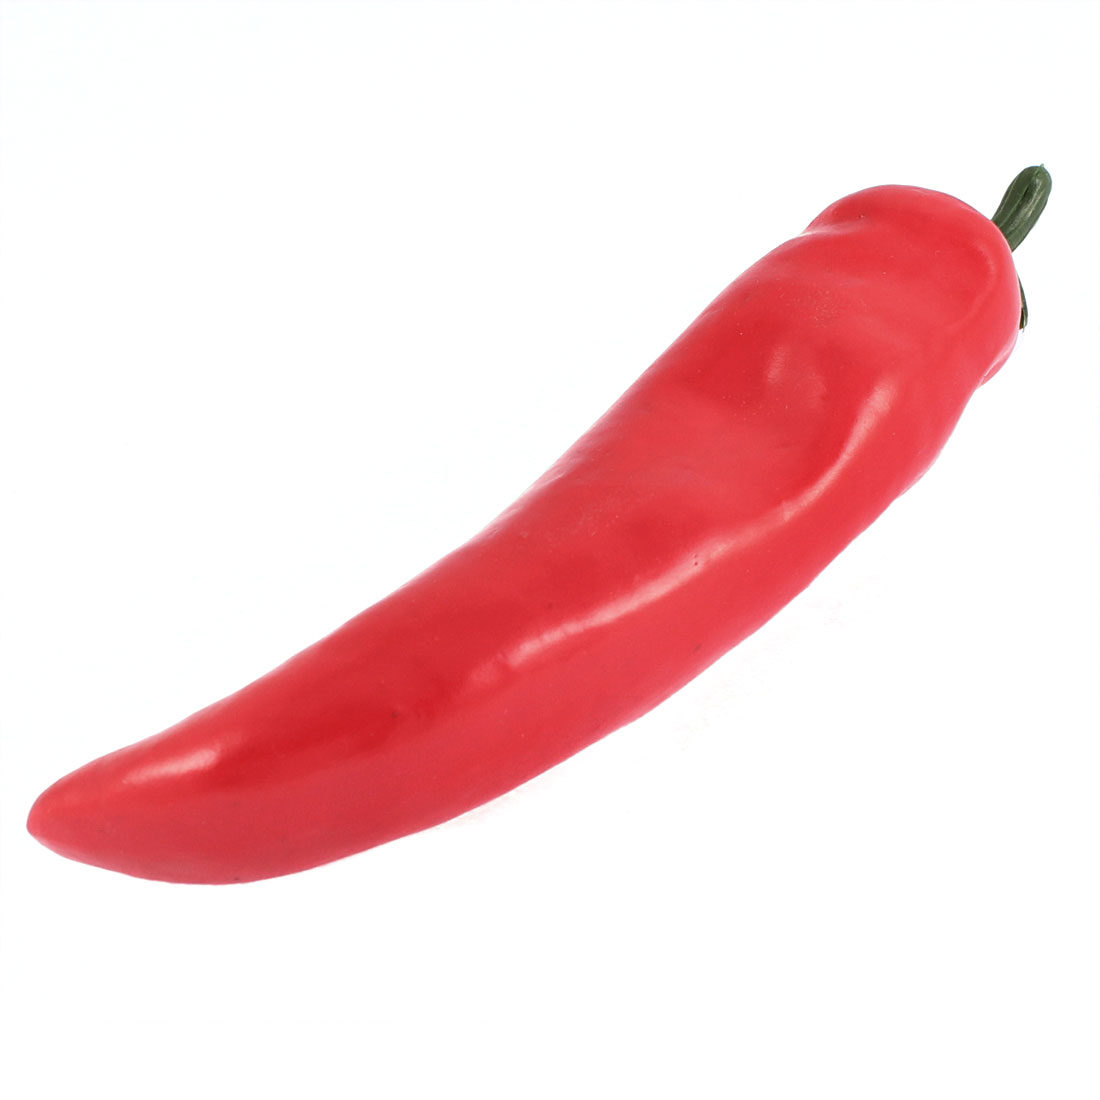 Red Plastic Home Decorative Vegetable Artificial Chili Pepper